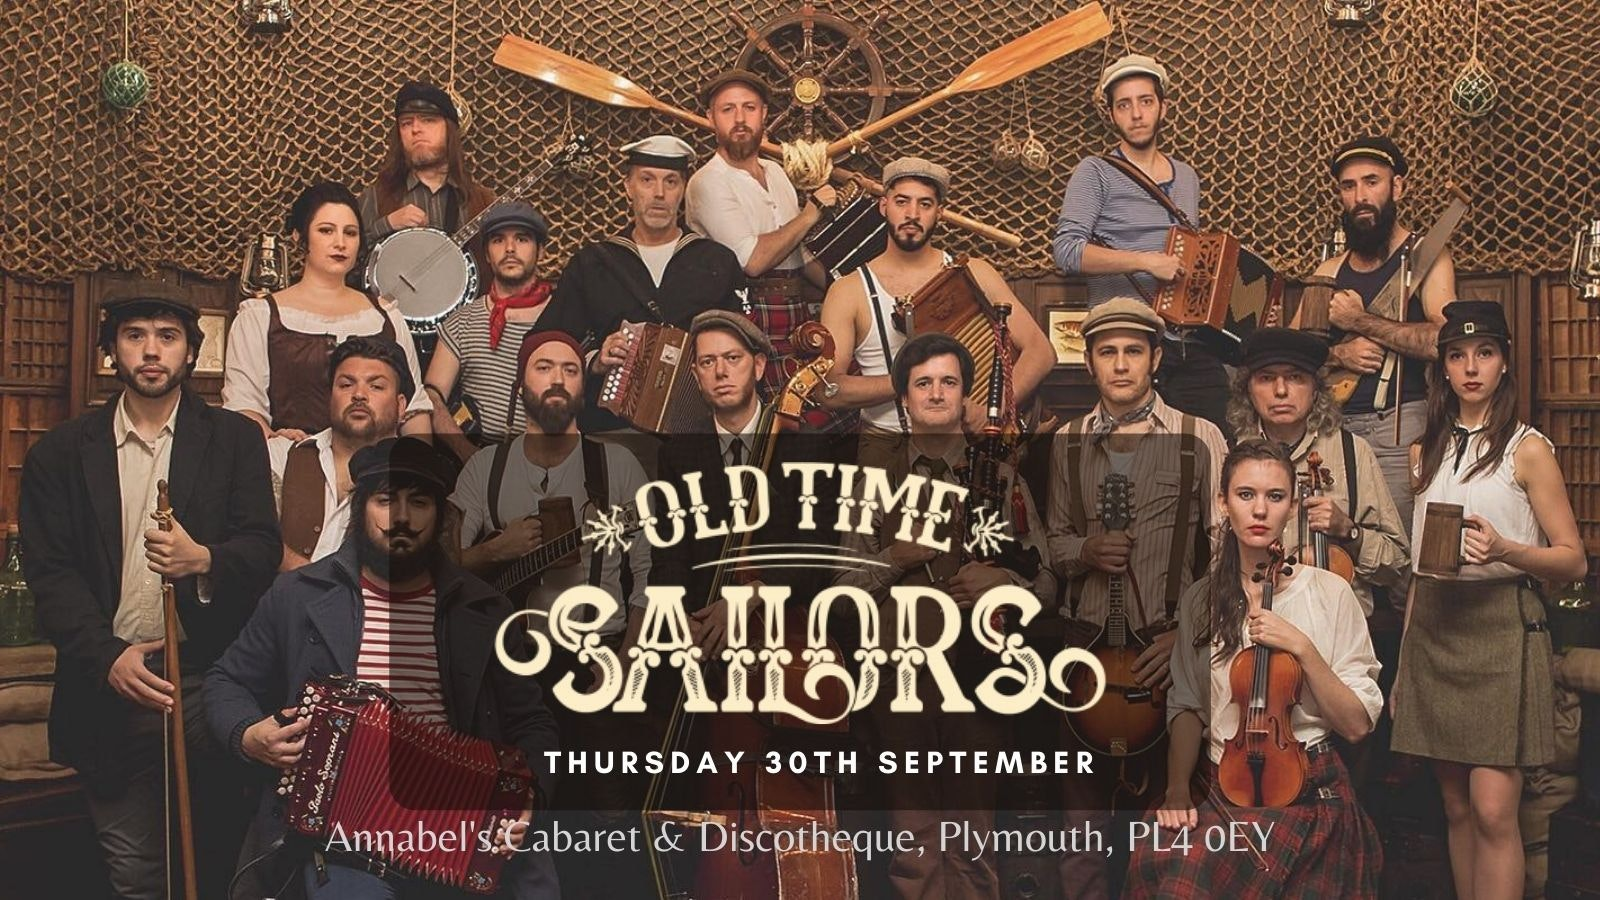 OLD TIME SAILORS | Plymouth, Annabel's Cabaret & Discotheque